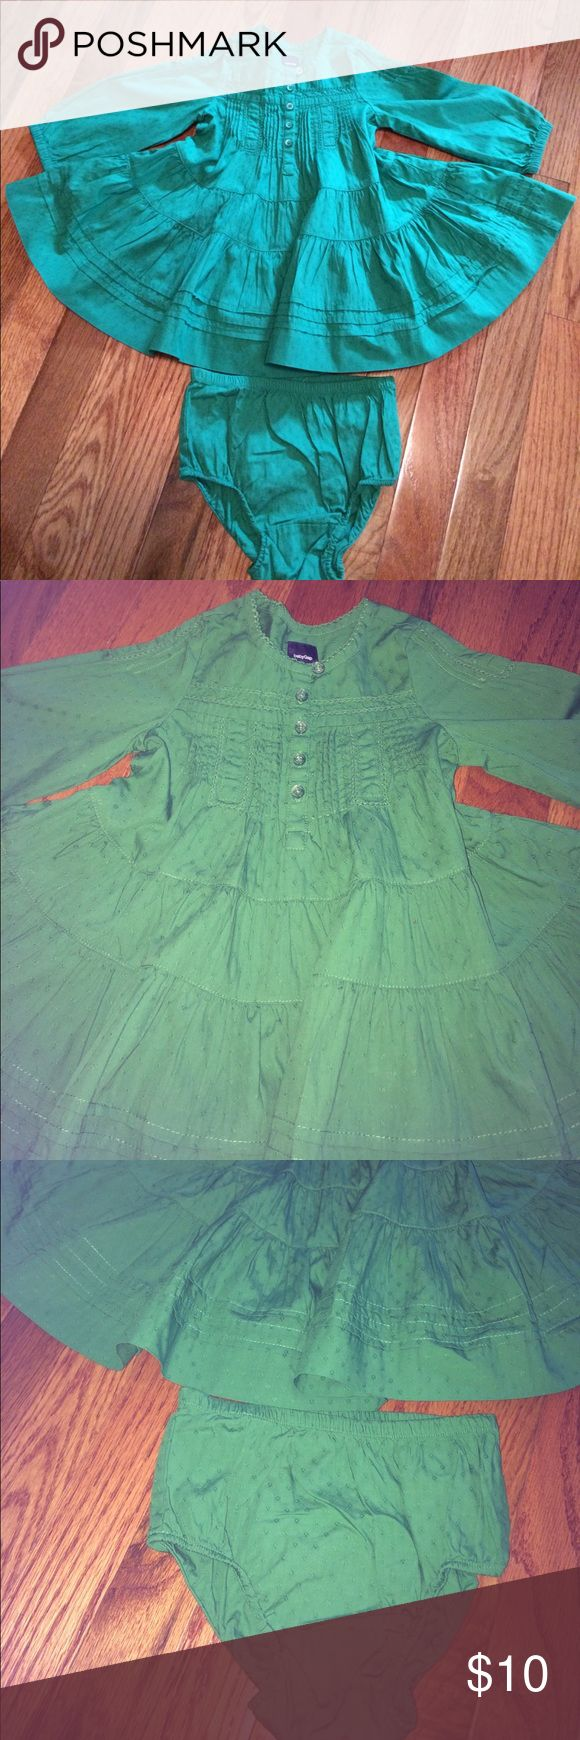 Gap dress and panties 12-18 months Gap dress and panties very light weight cotton in a Kelly green excellent condition GAP Dresses Casual